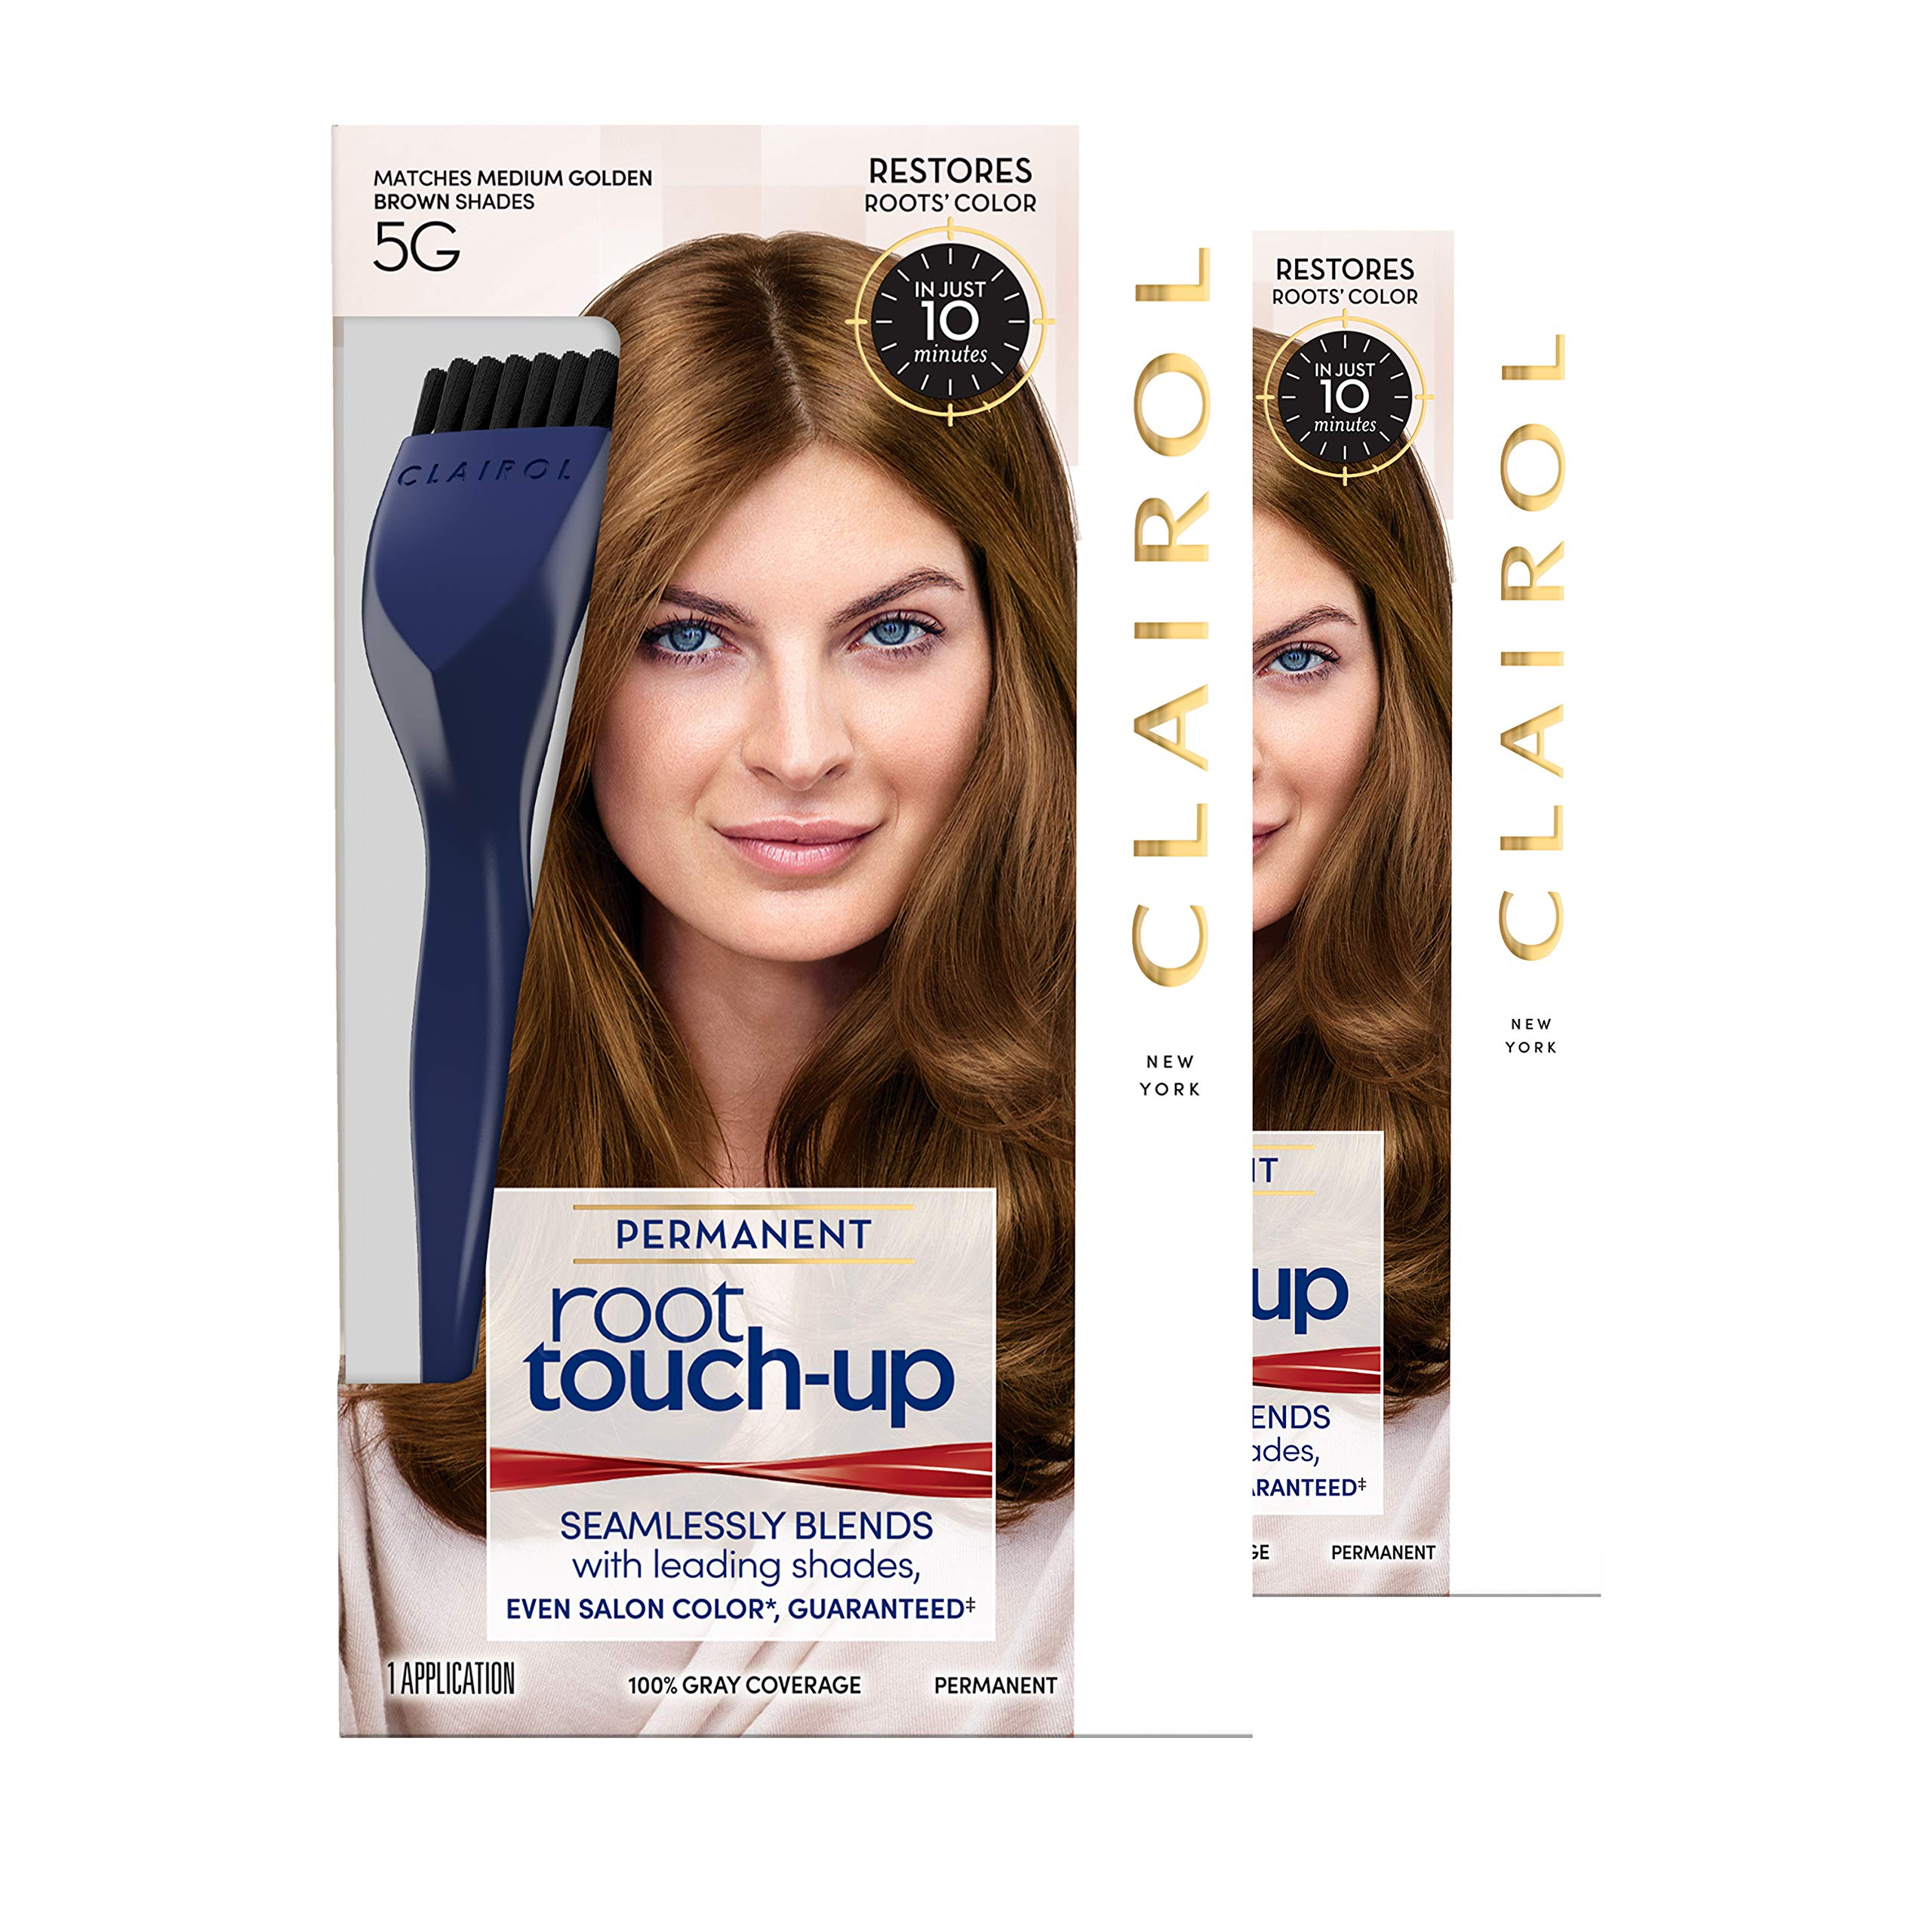 Clairol Root Touch-Up Permanent Hair Color Creme, 5G Medium Golden Brown, 2 Count by Clairol